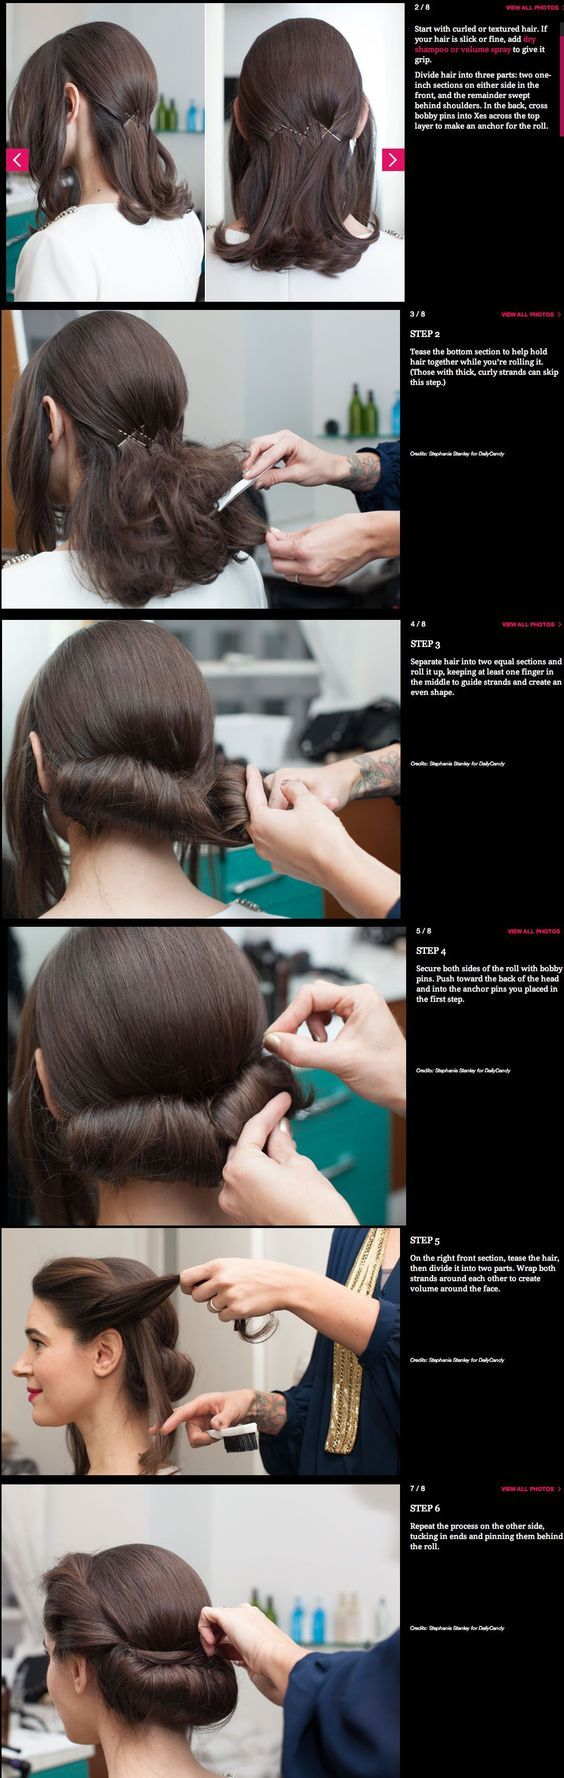 159 best Frisur images on Pinterest   Hairstyle ideas  Braided updo     DIY low roll updo for Maggie s hair  add baby s breath